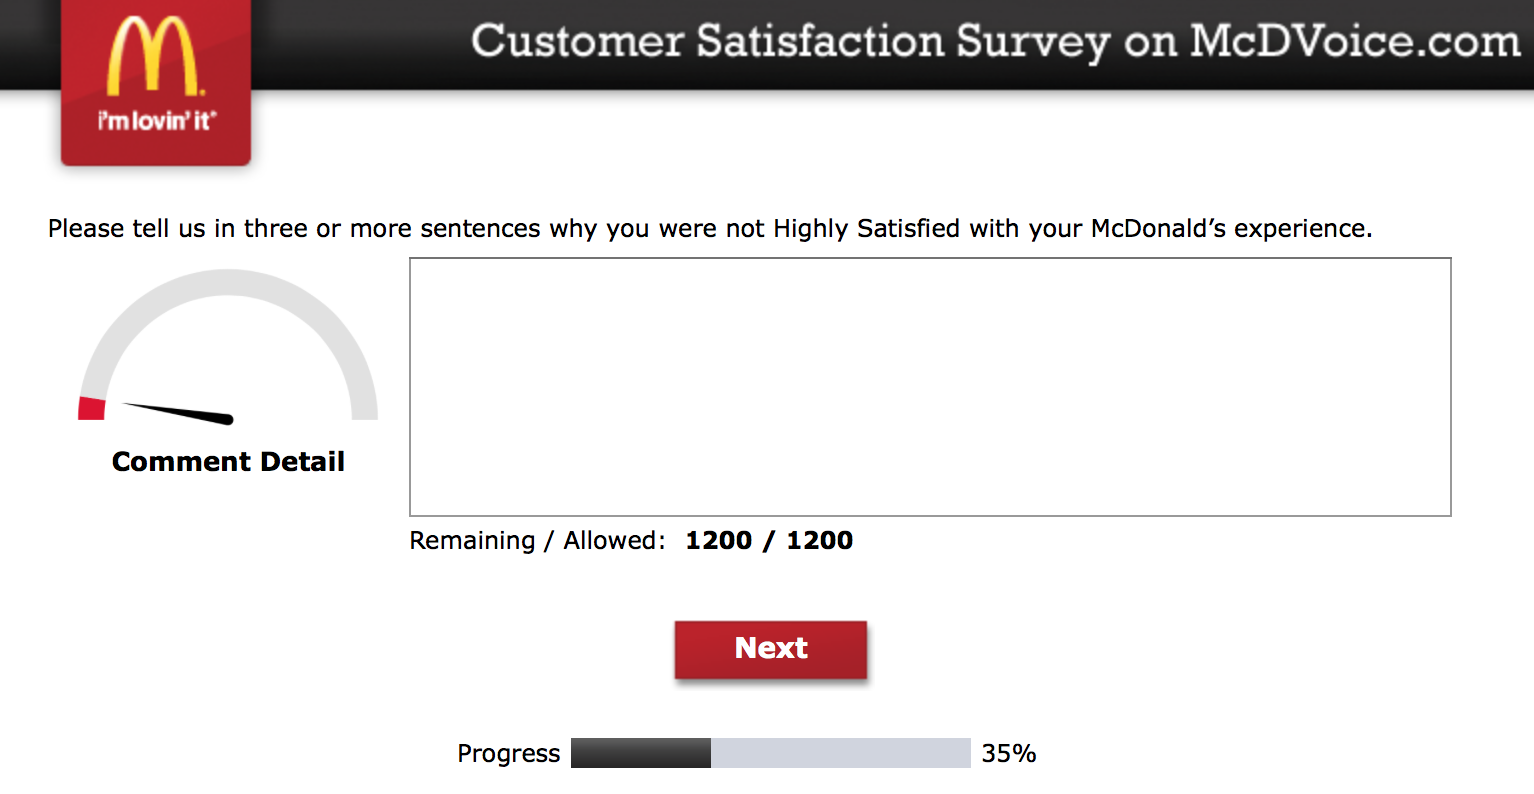 Mcdvoice.com Customer Survey 10